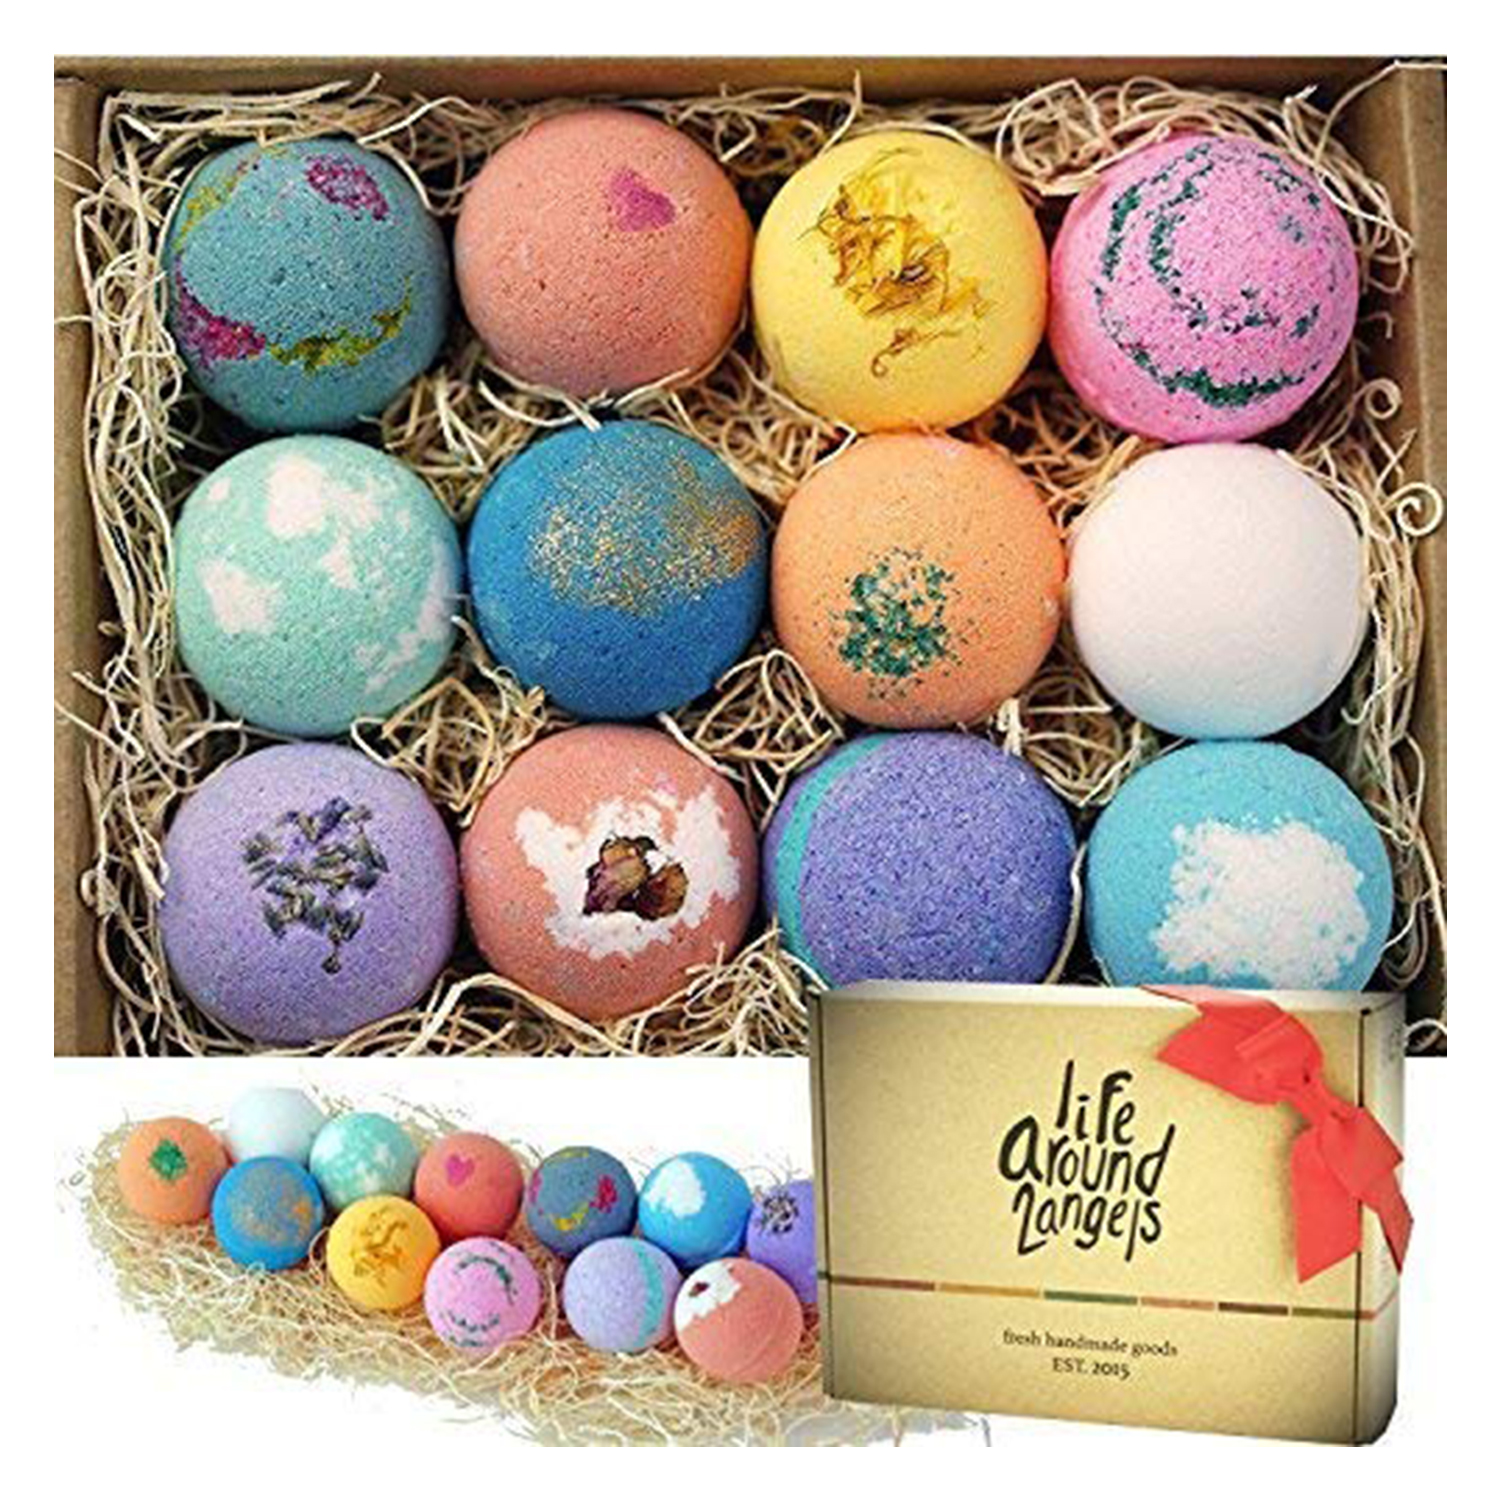 lifearound bath bombs gift set usa made fizzies